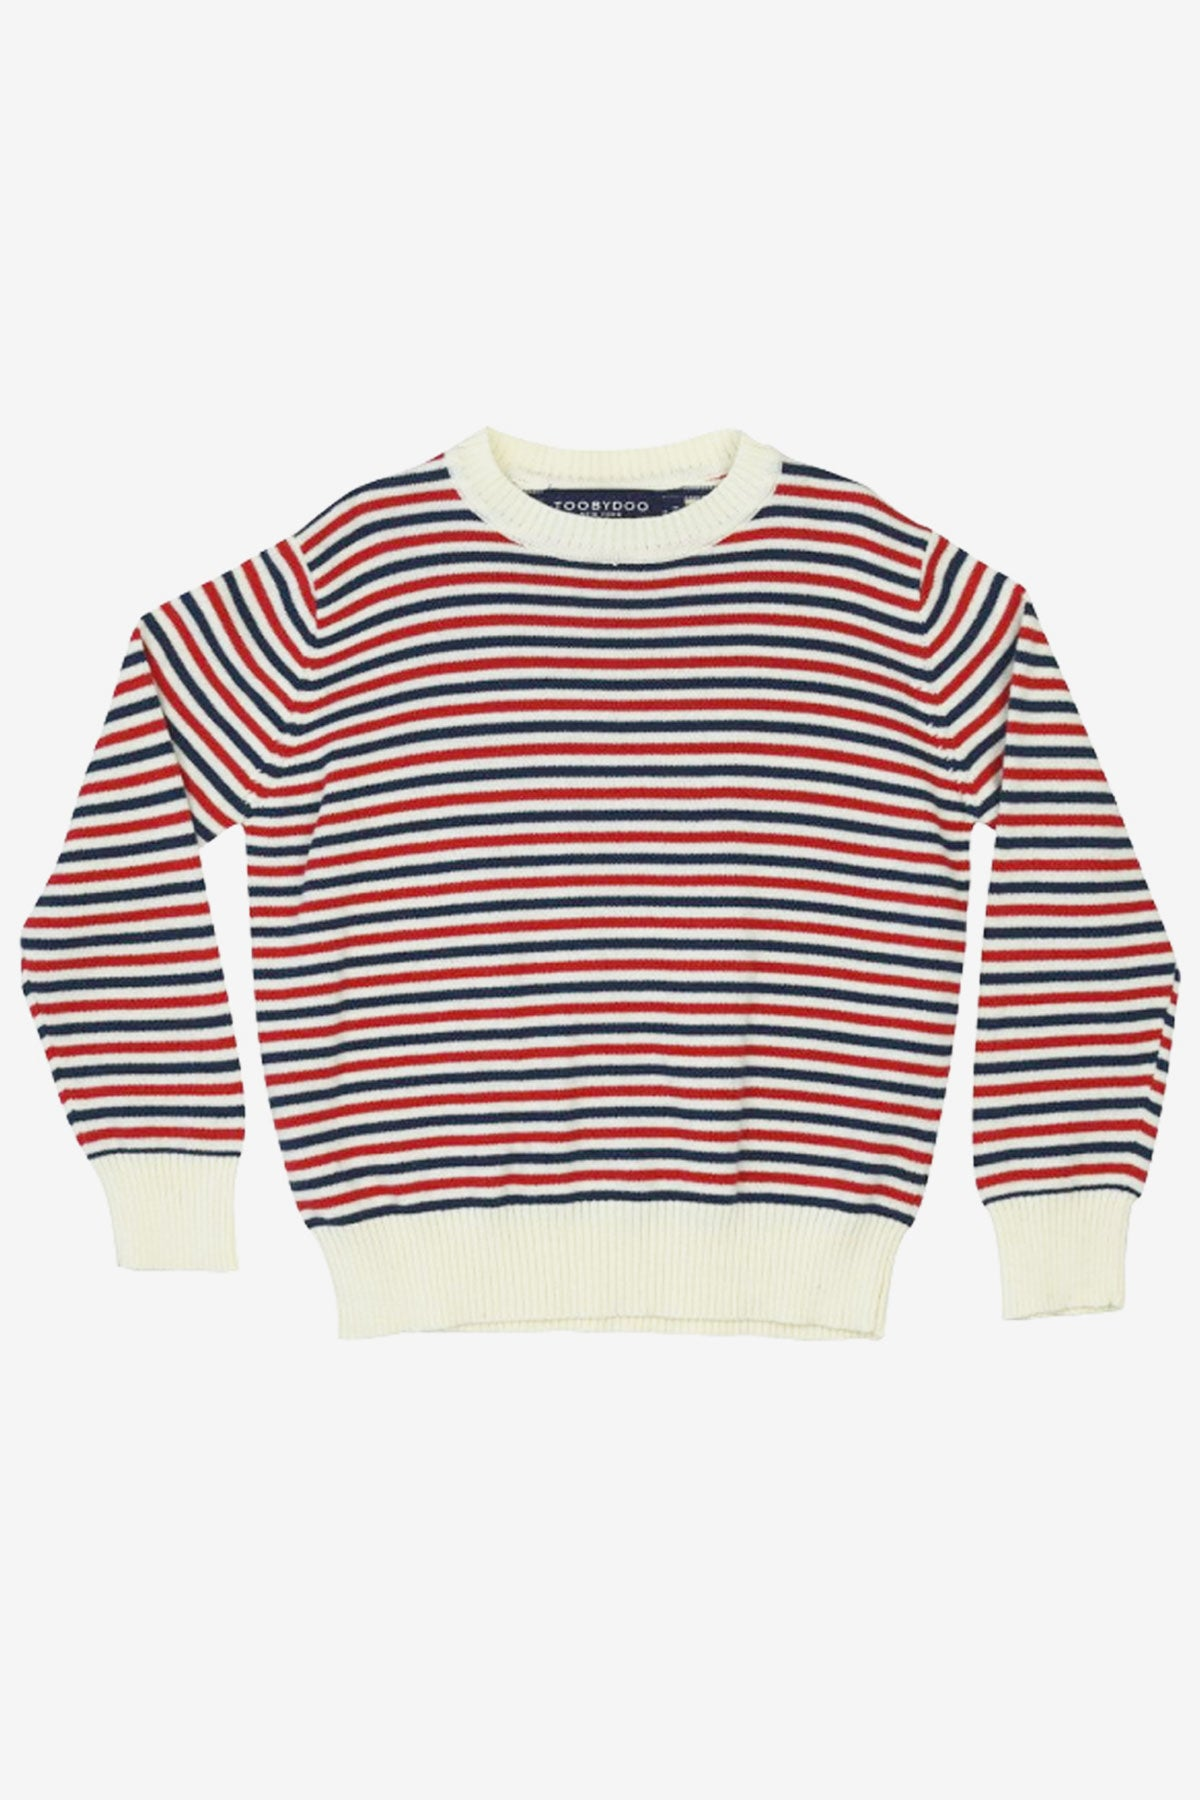 Toobydoo Boys Crew Sweater